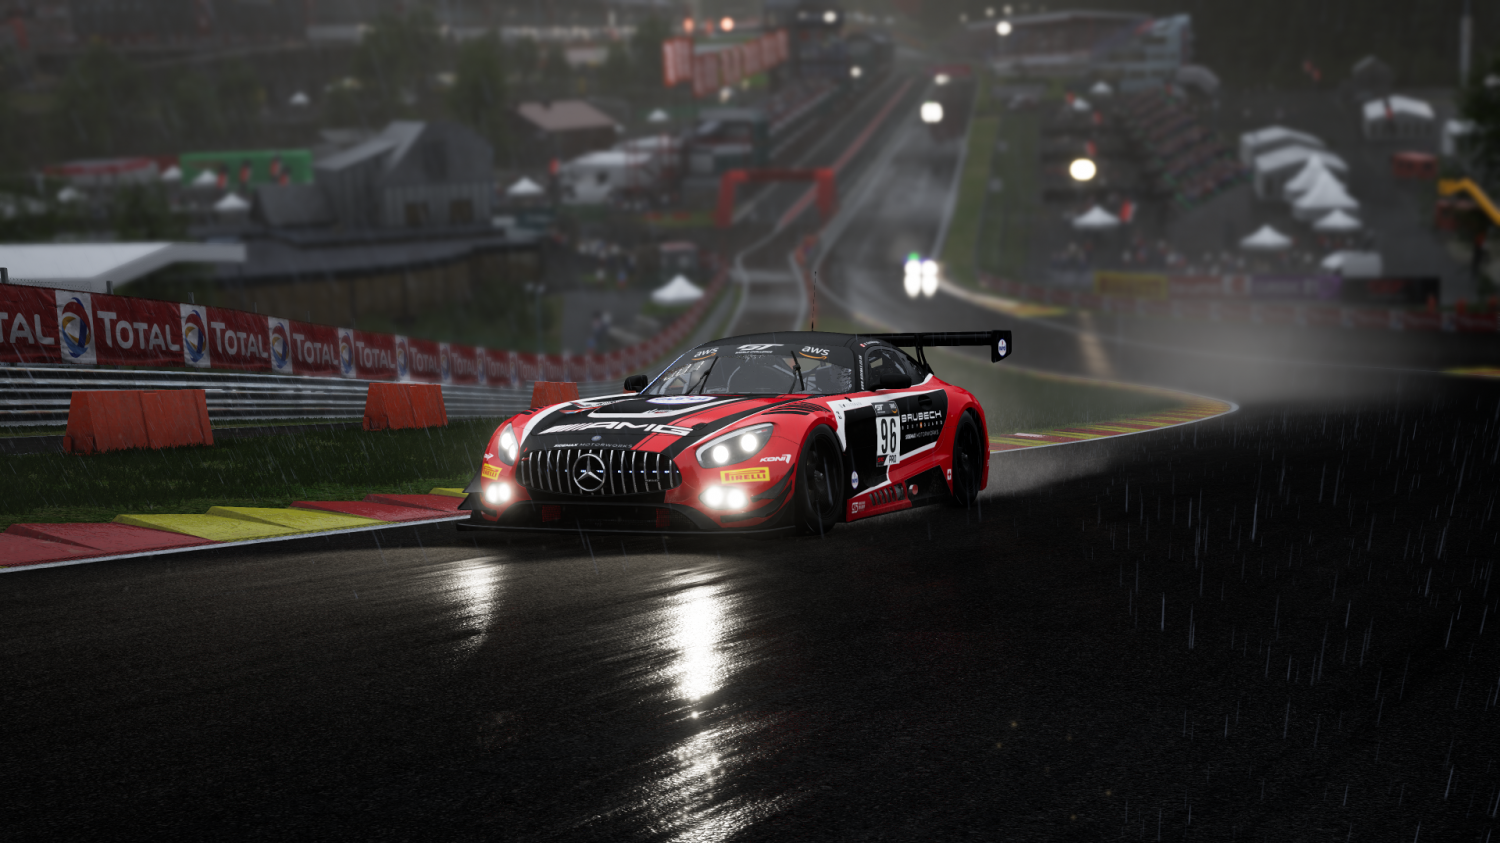 SideMax Motorworks, Mercedes-AMG Take Victory in Rain Soaked 6 Hours of Spa